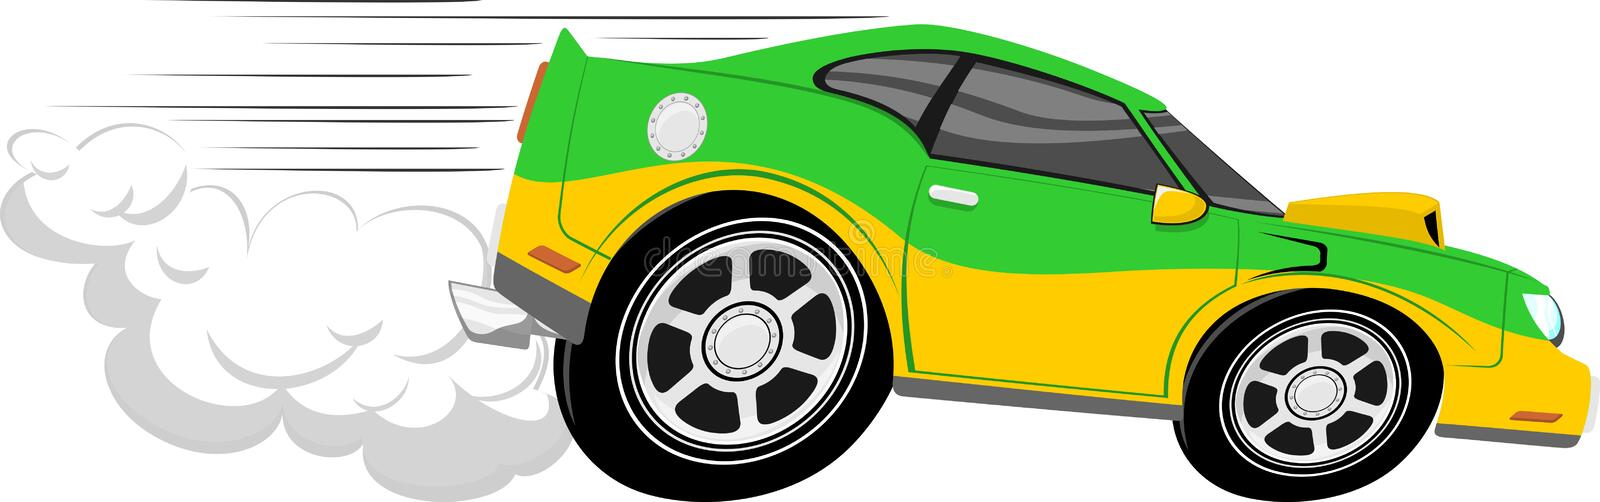 Race Car Cartoon Stock Photo